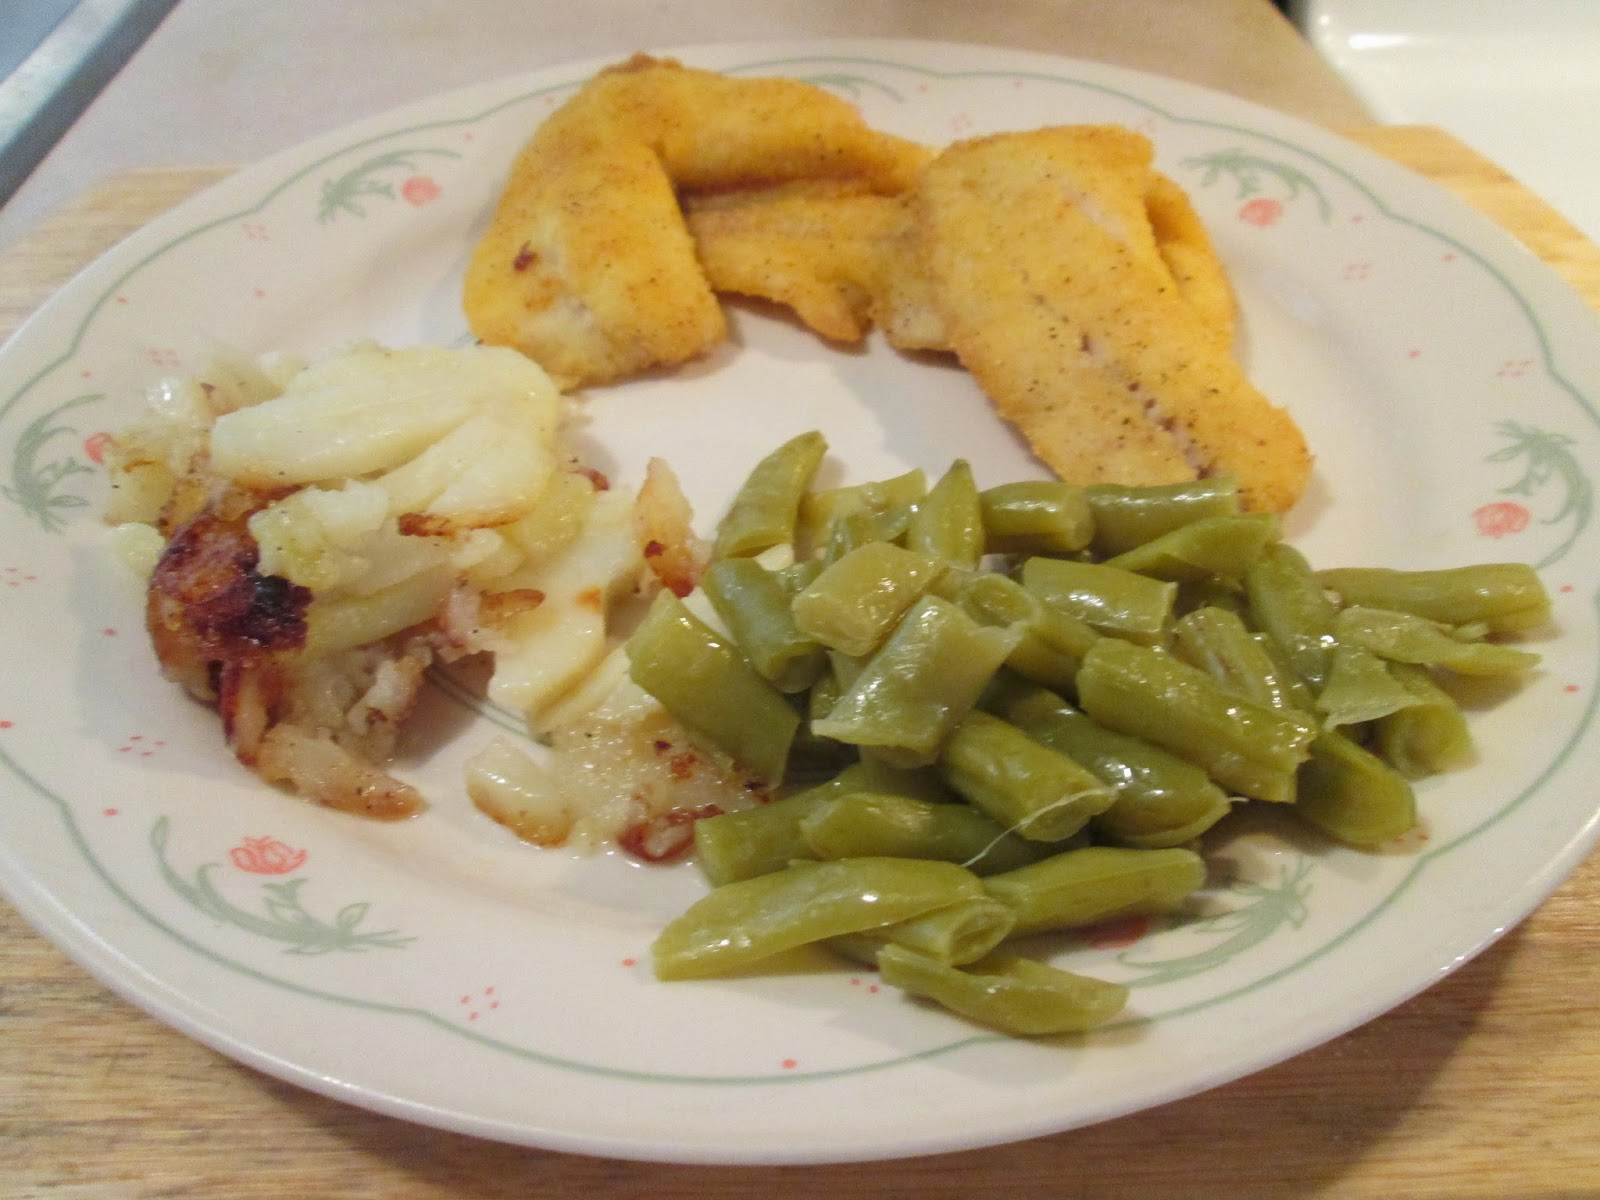 fried okeechobee crappie w/ canned green beans, fried potatoes, and...